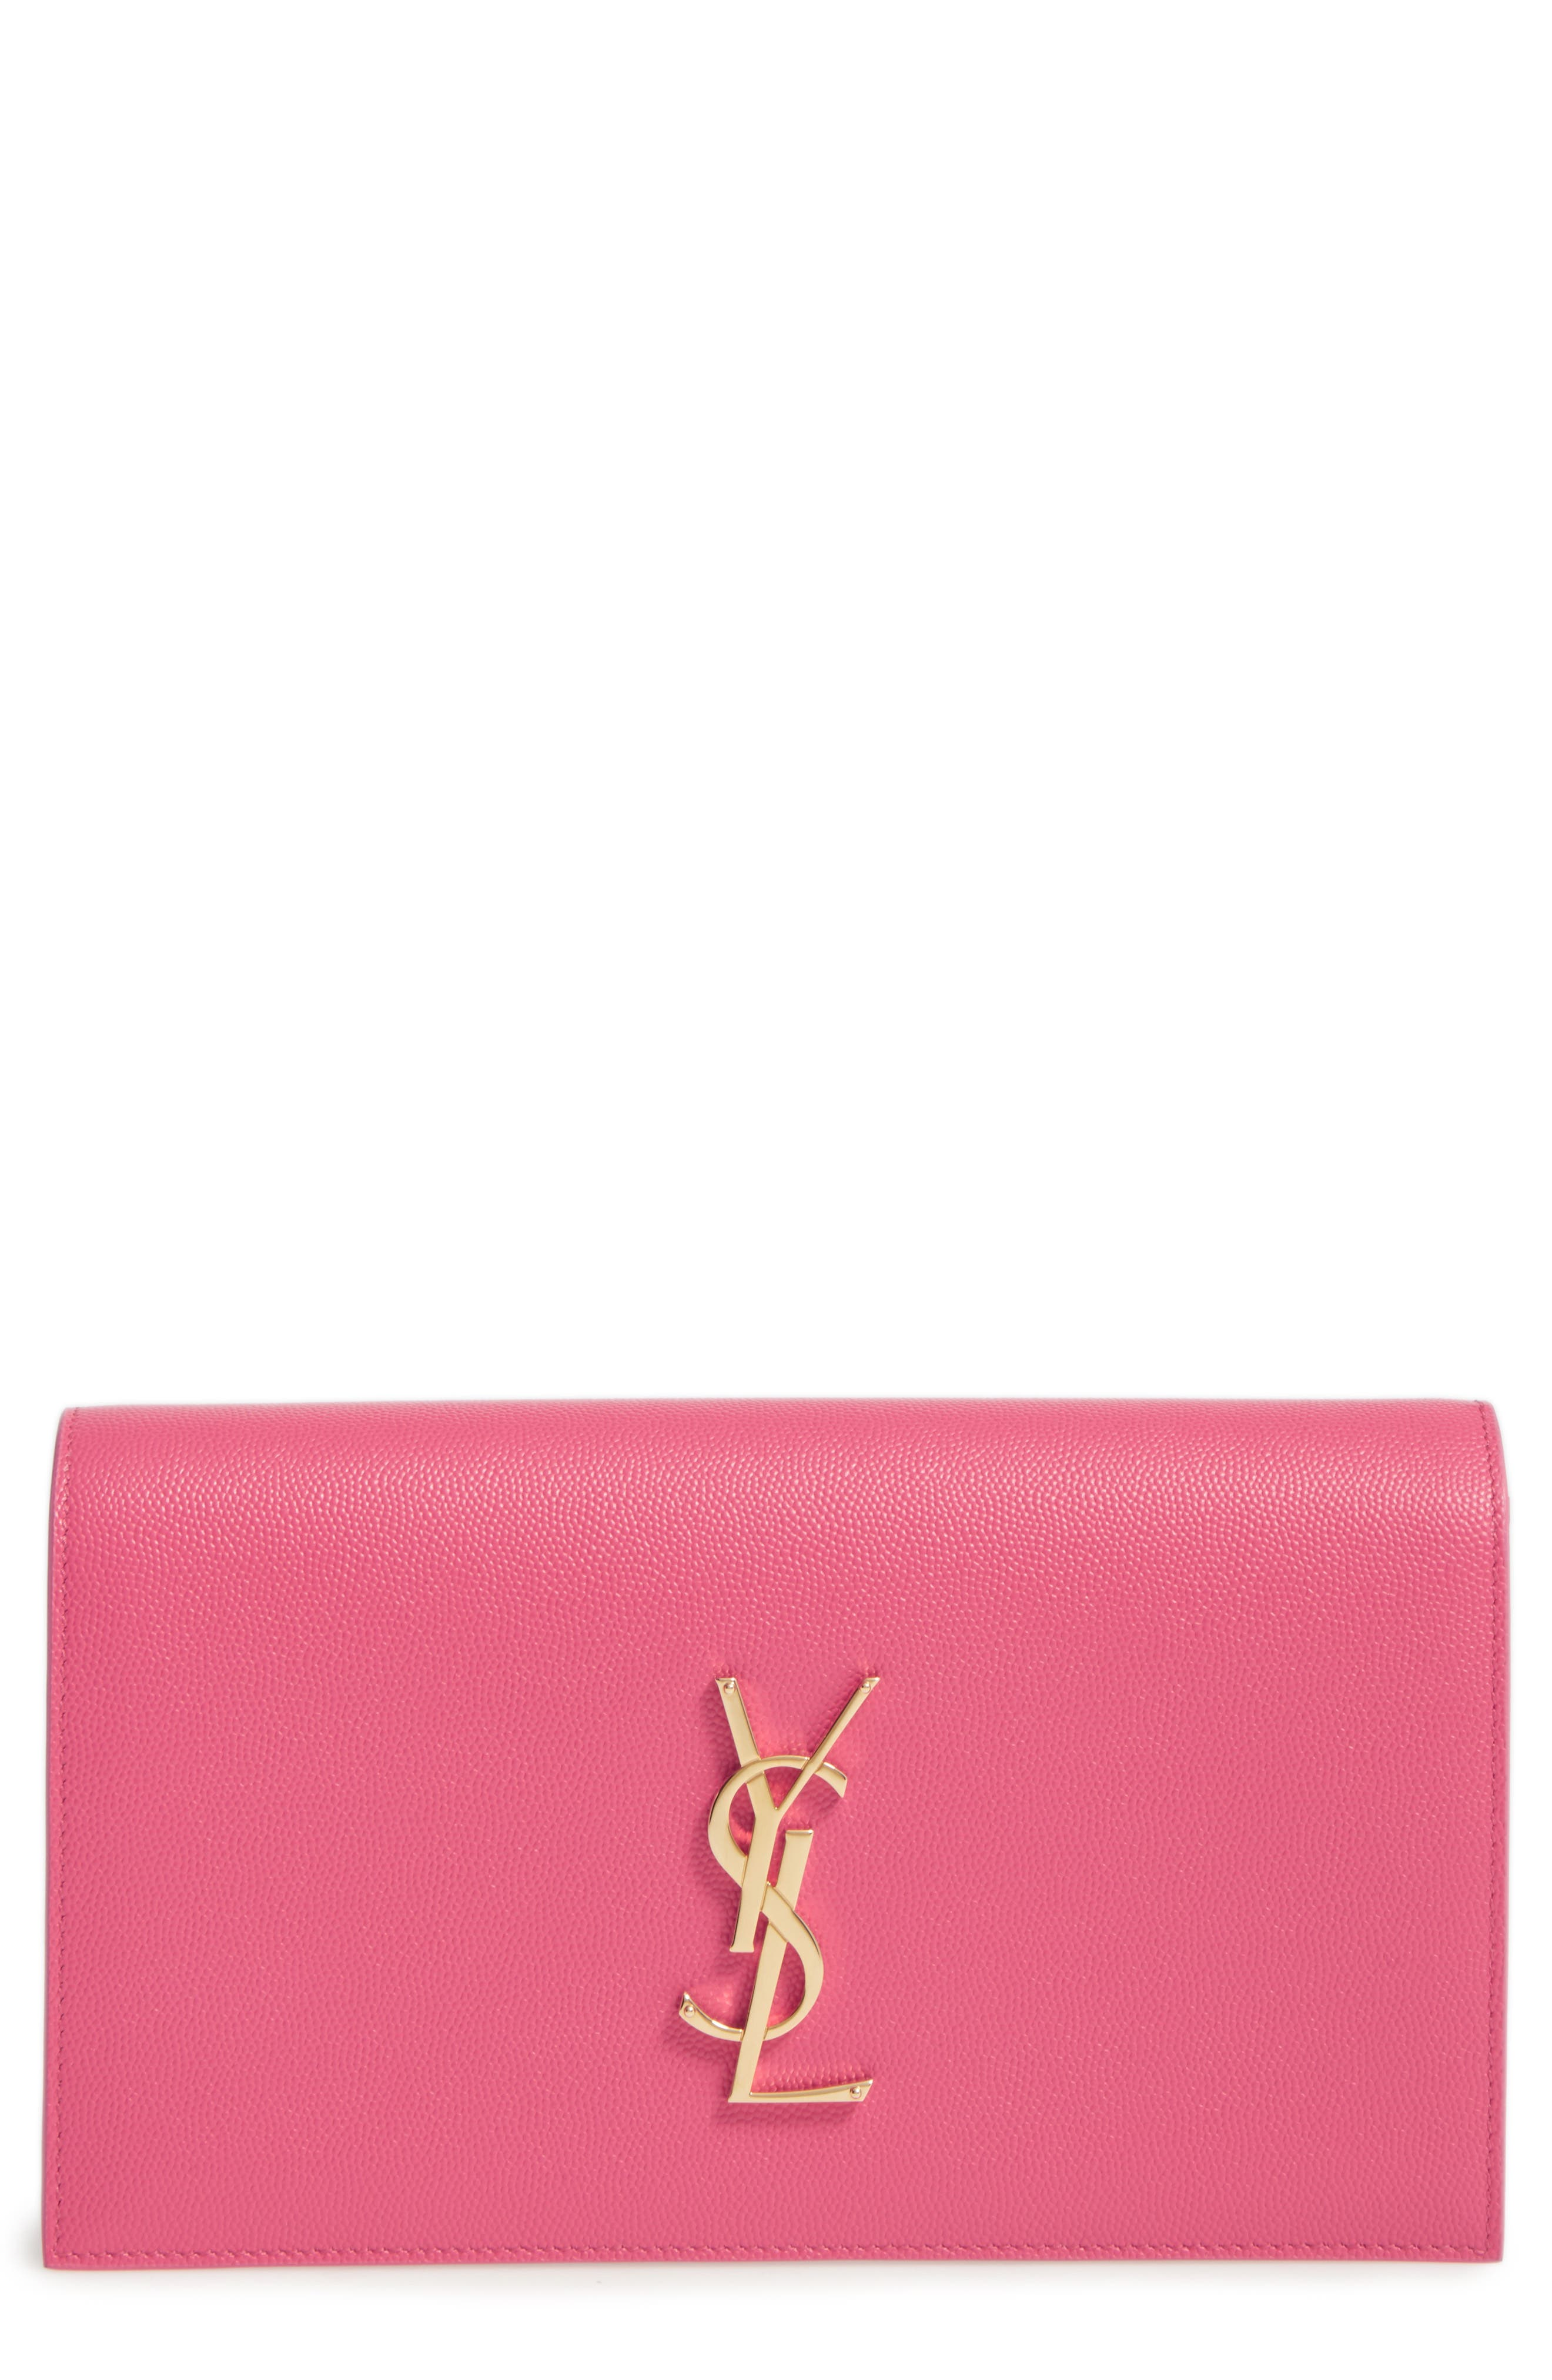 'MONOGRAM' LEATHER CLUTCH - PINK